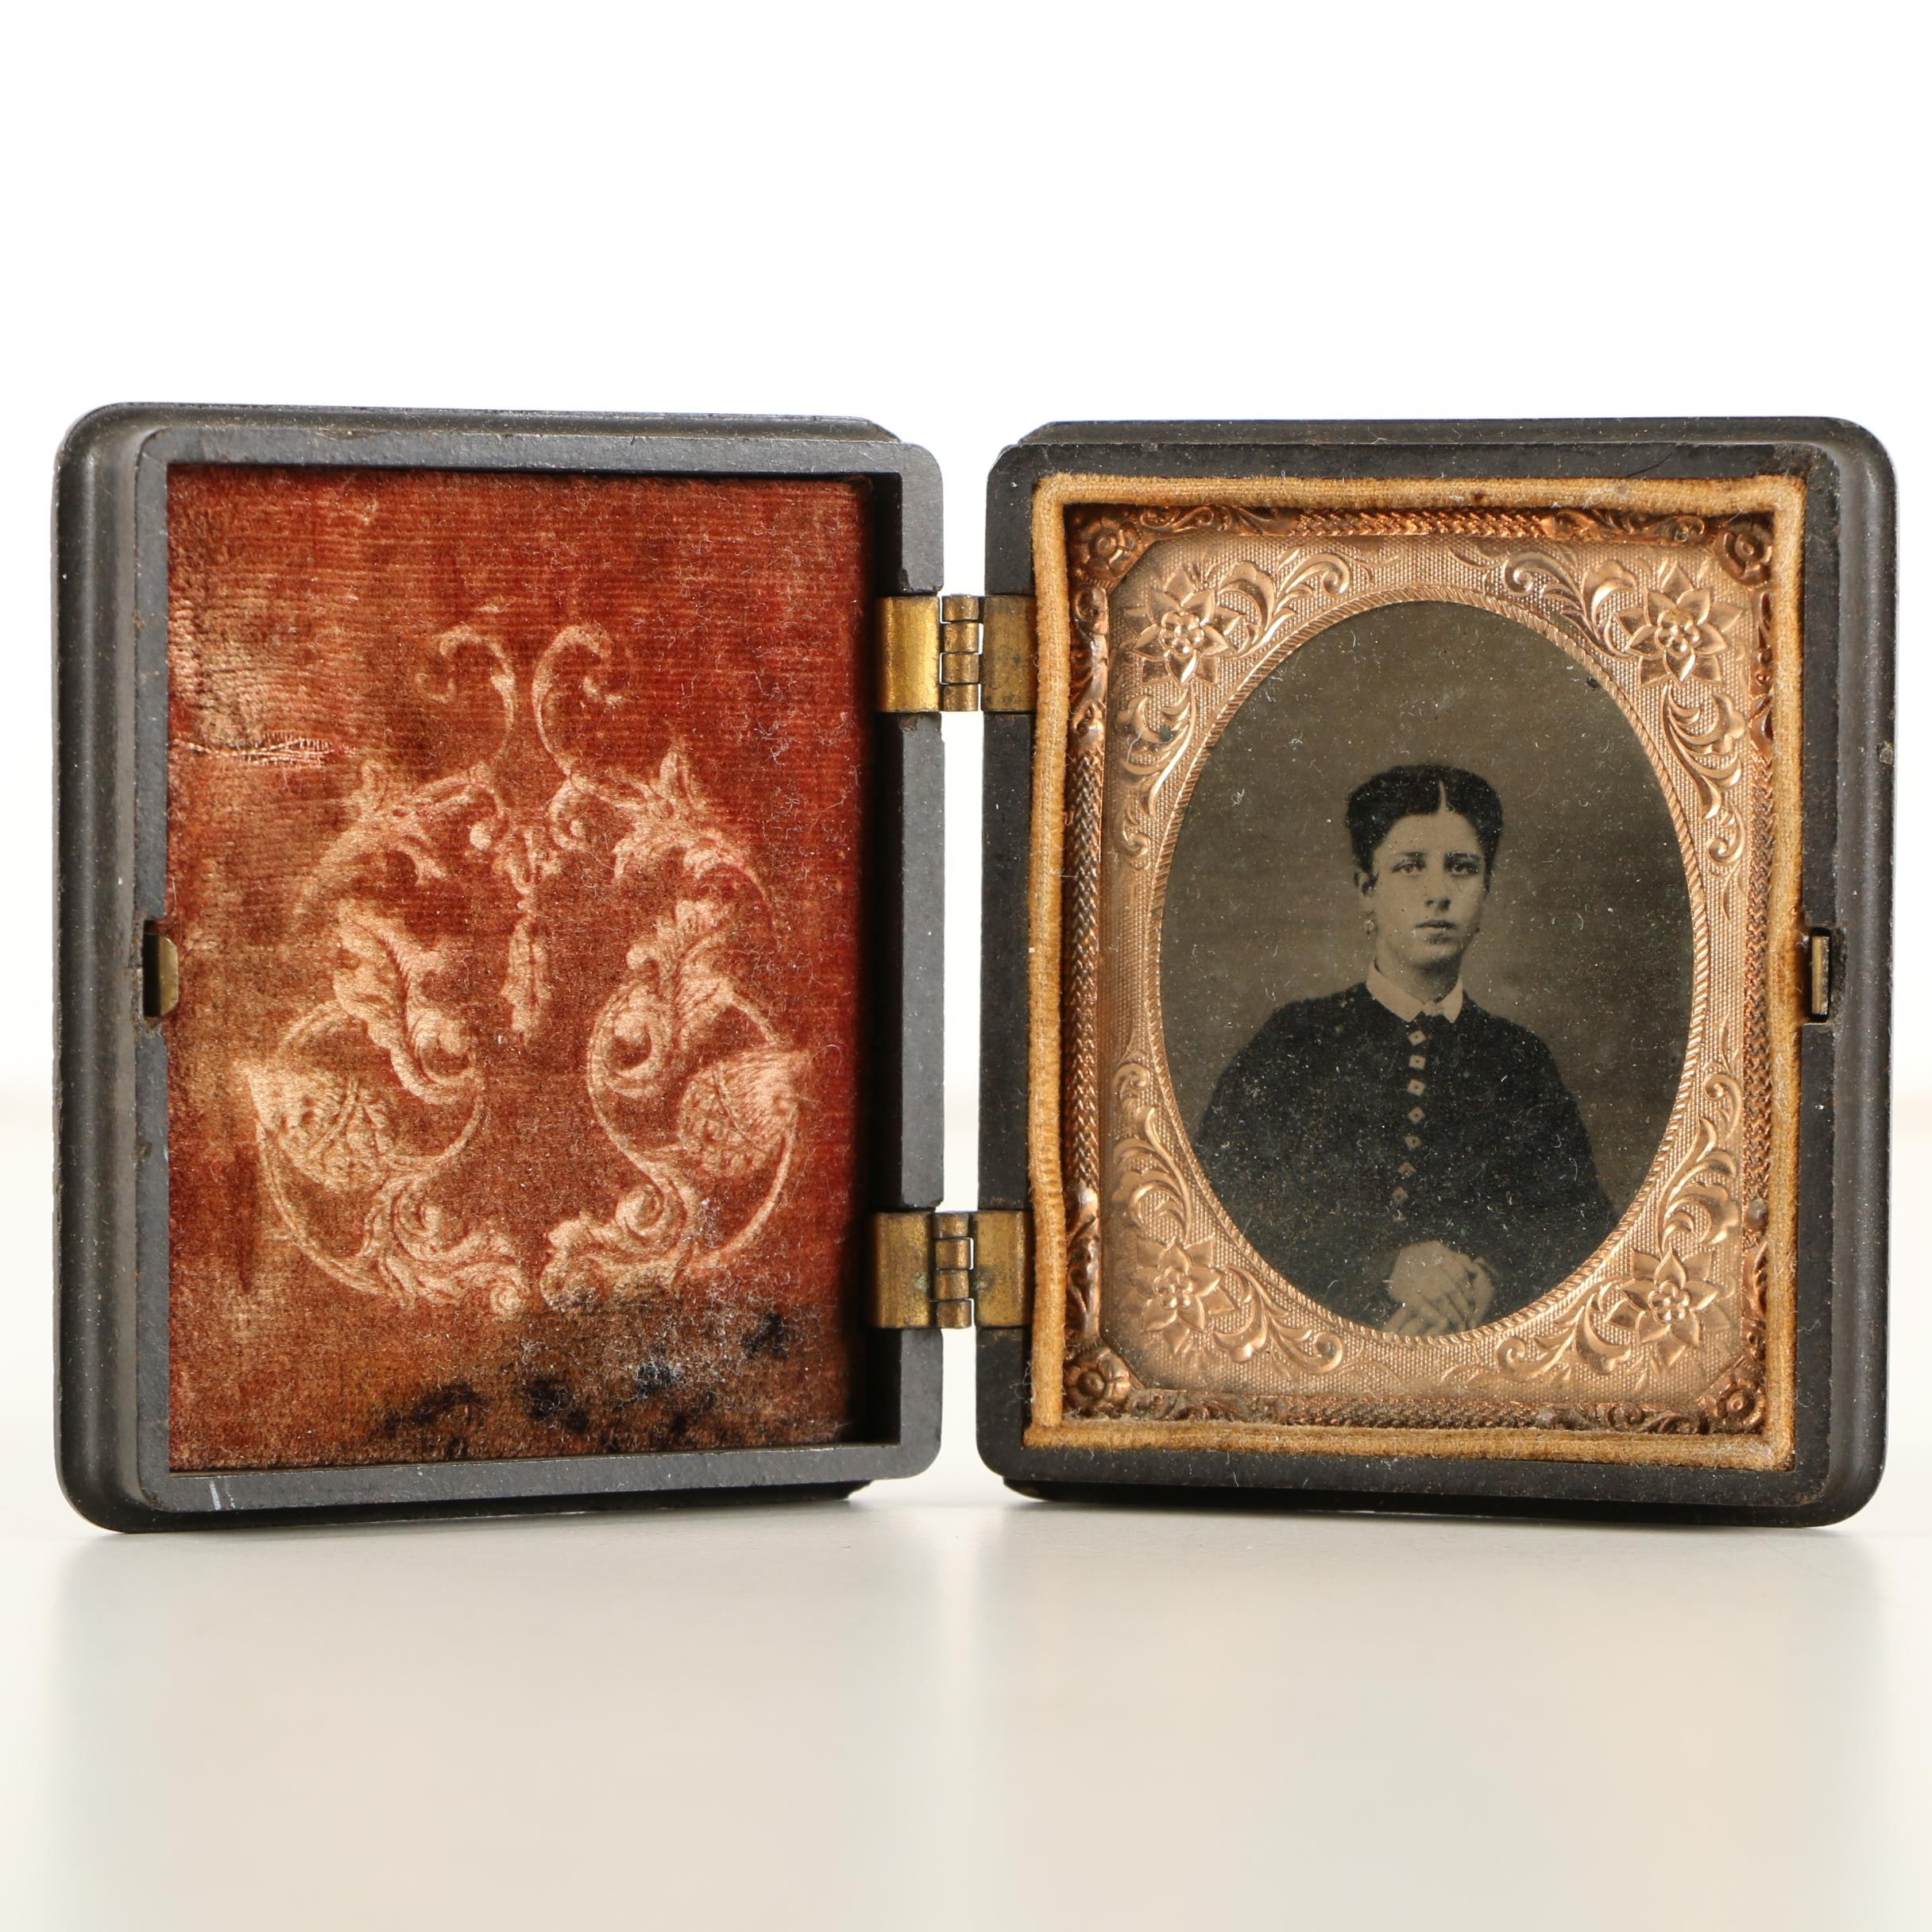 Antique Tintype Photograph in Union Case